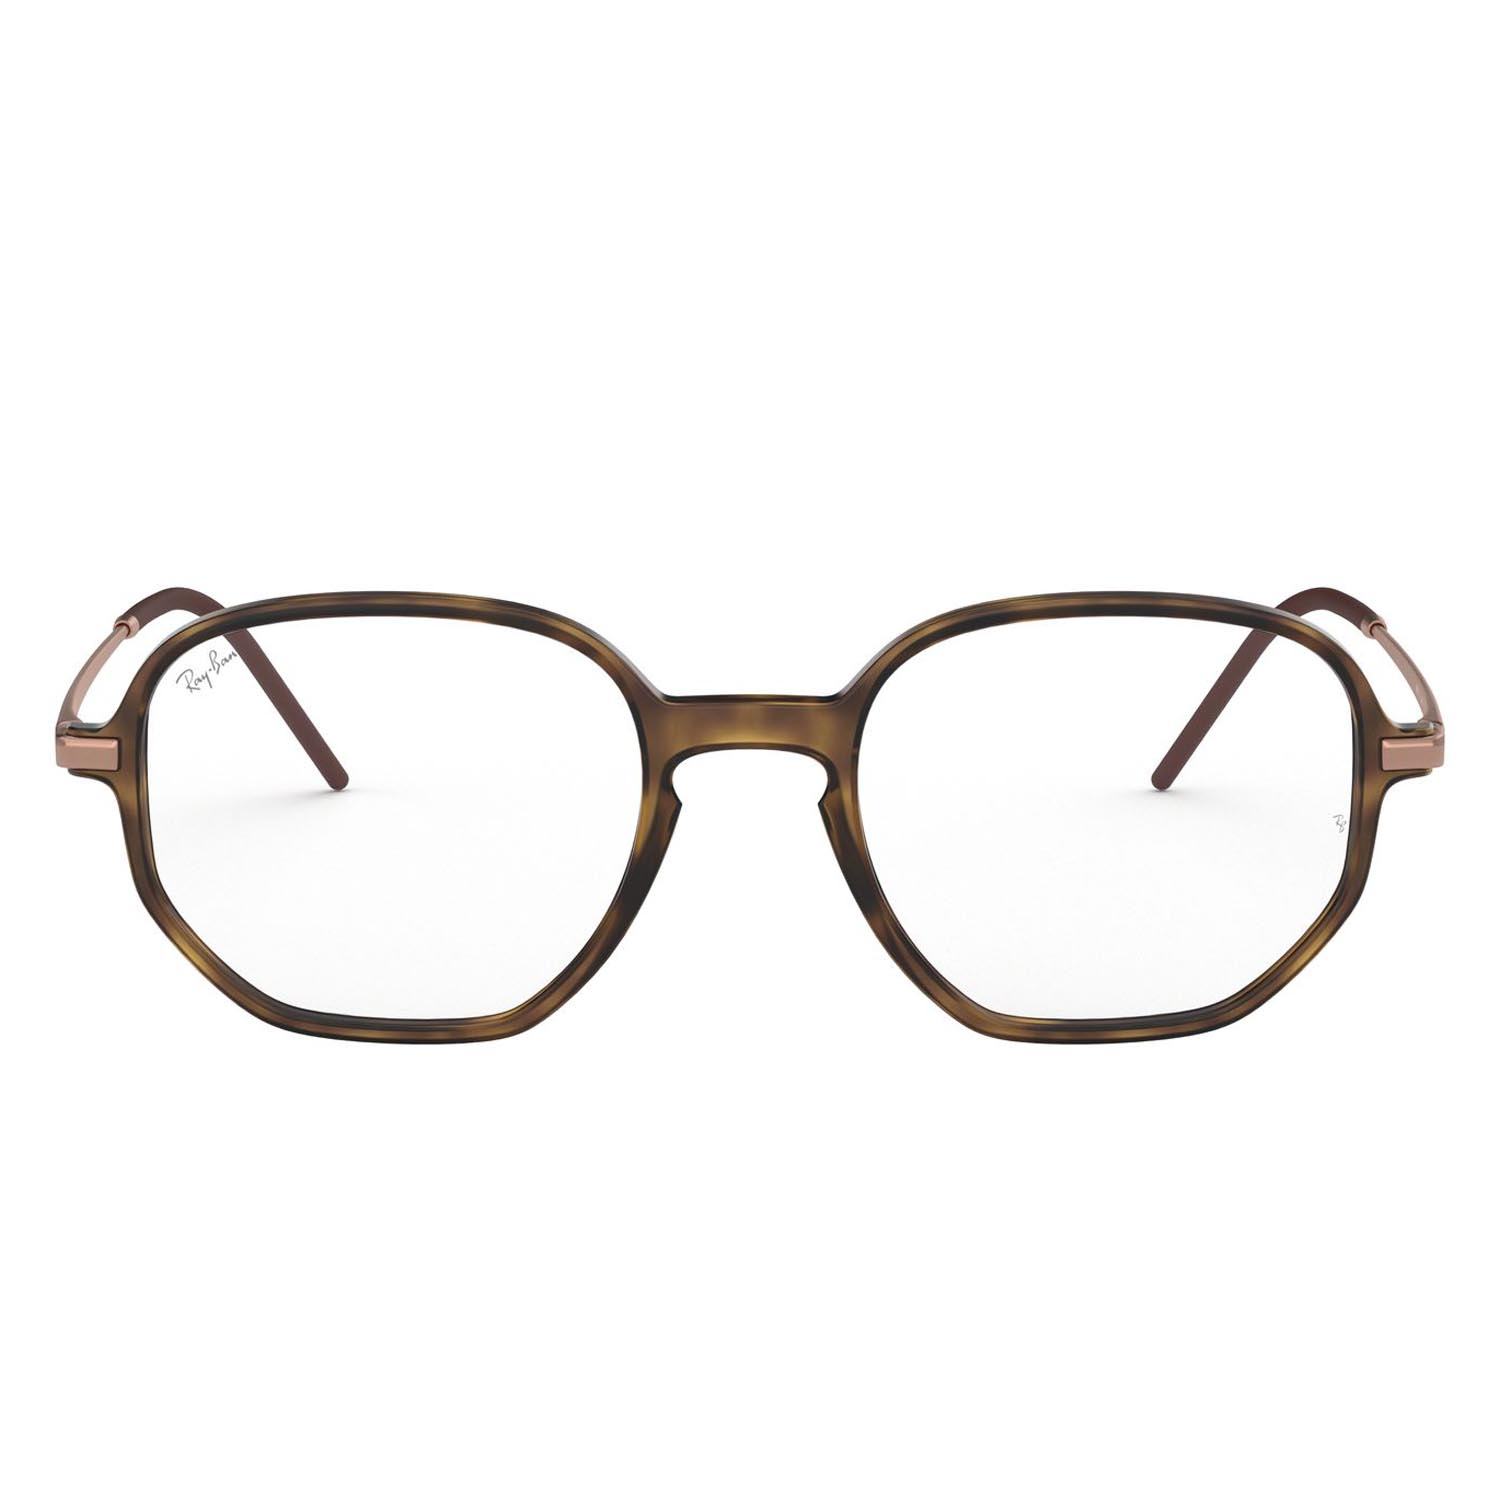 Ray-Ban RX Optical Frame for Prescription Lenses Single Vision or Progressive